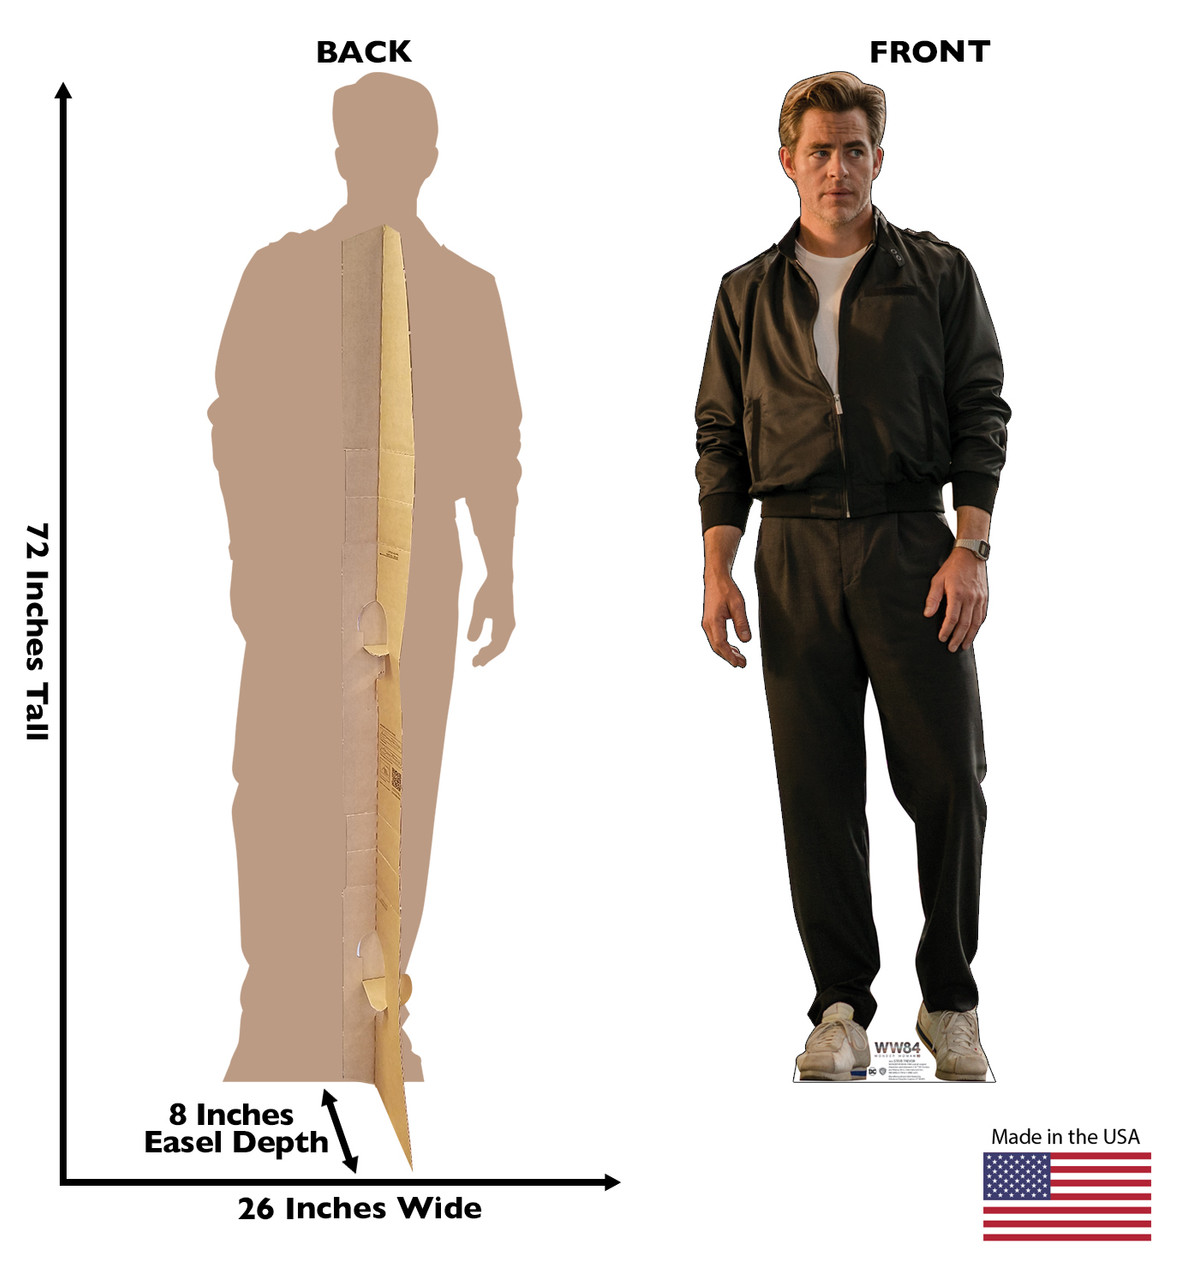 Steve Trevor cardboard standee from the movie Wonder Woman 1984 with front and back dimensions.